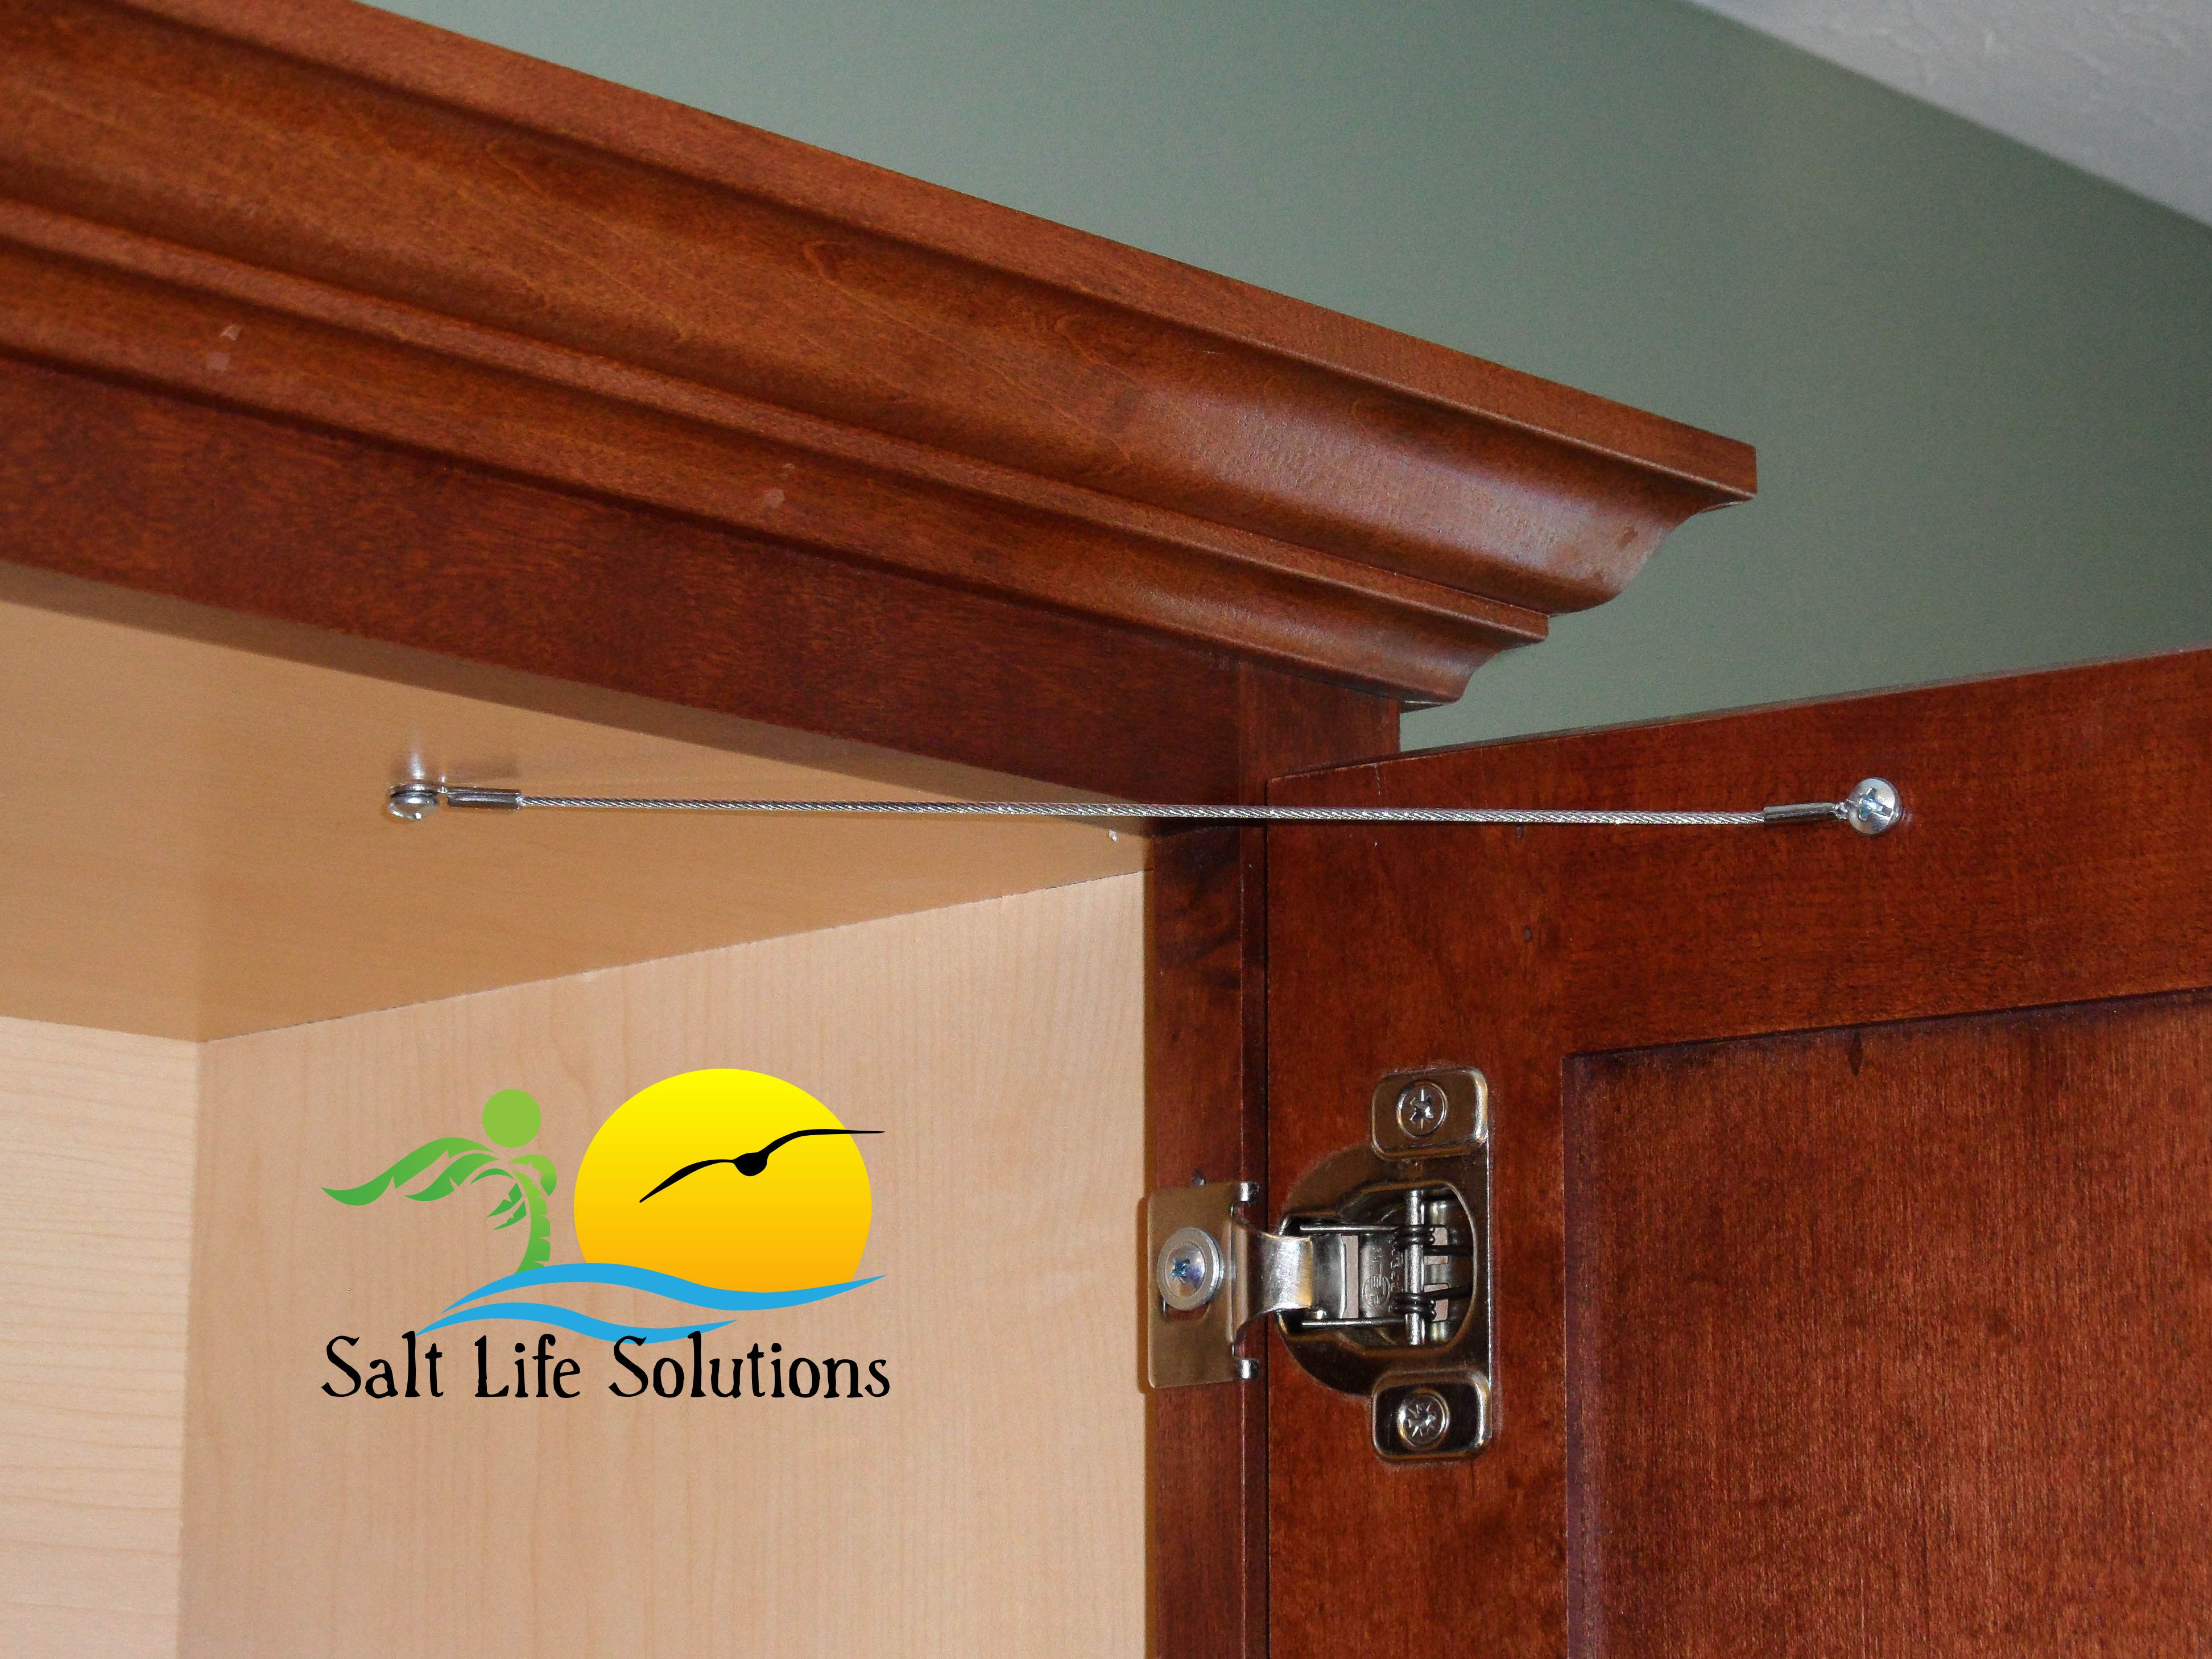 Pin By Out Islands Inc On Cabinet Door Swing Restraint Cupboard Hinges Stainless Steel Cabinets Cabinet Doors